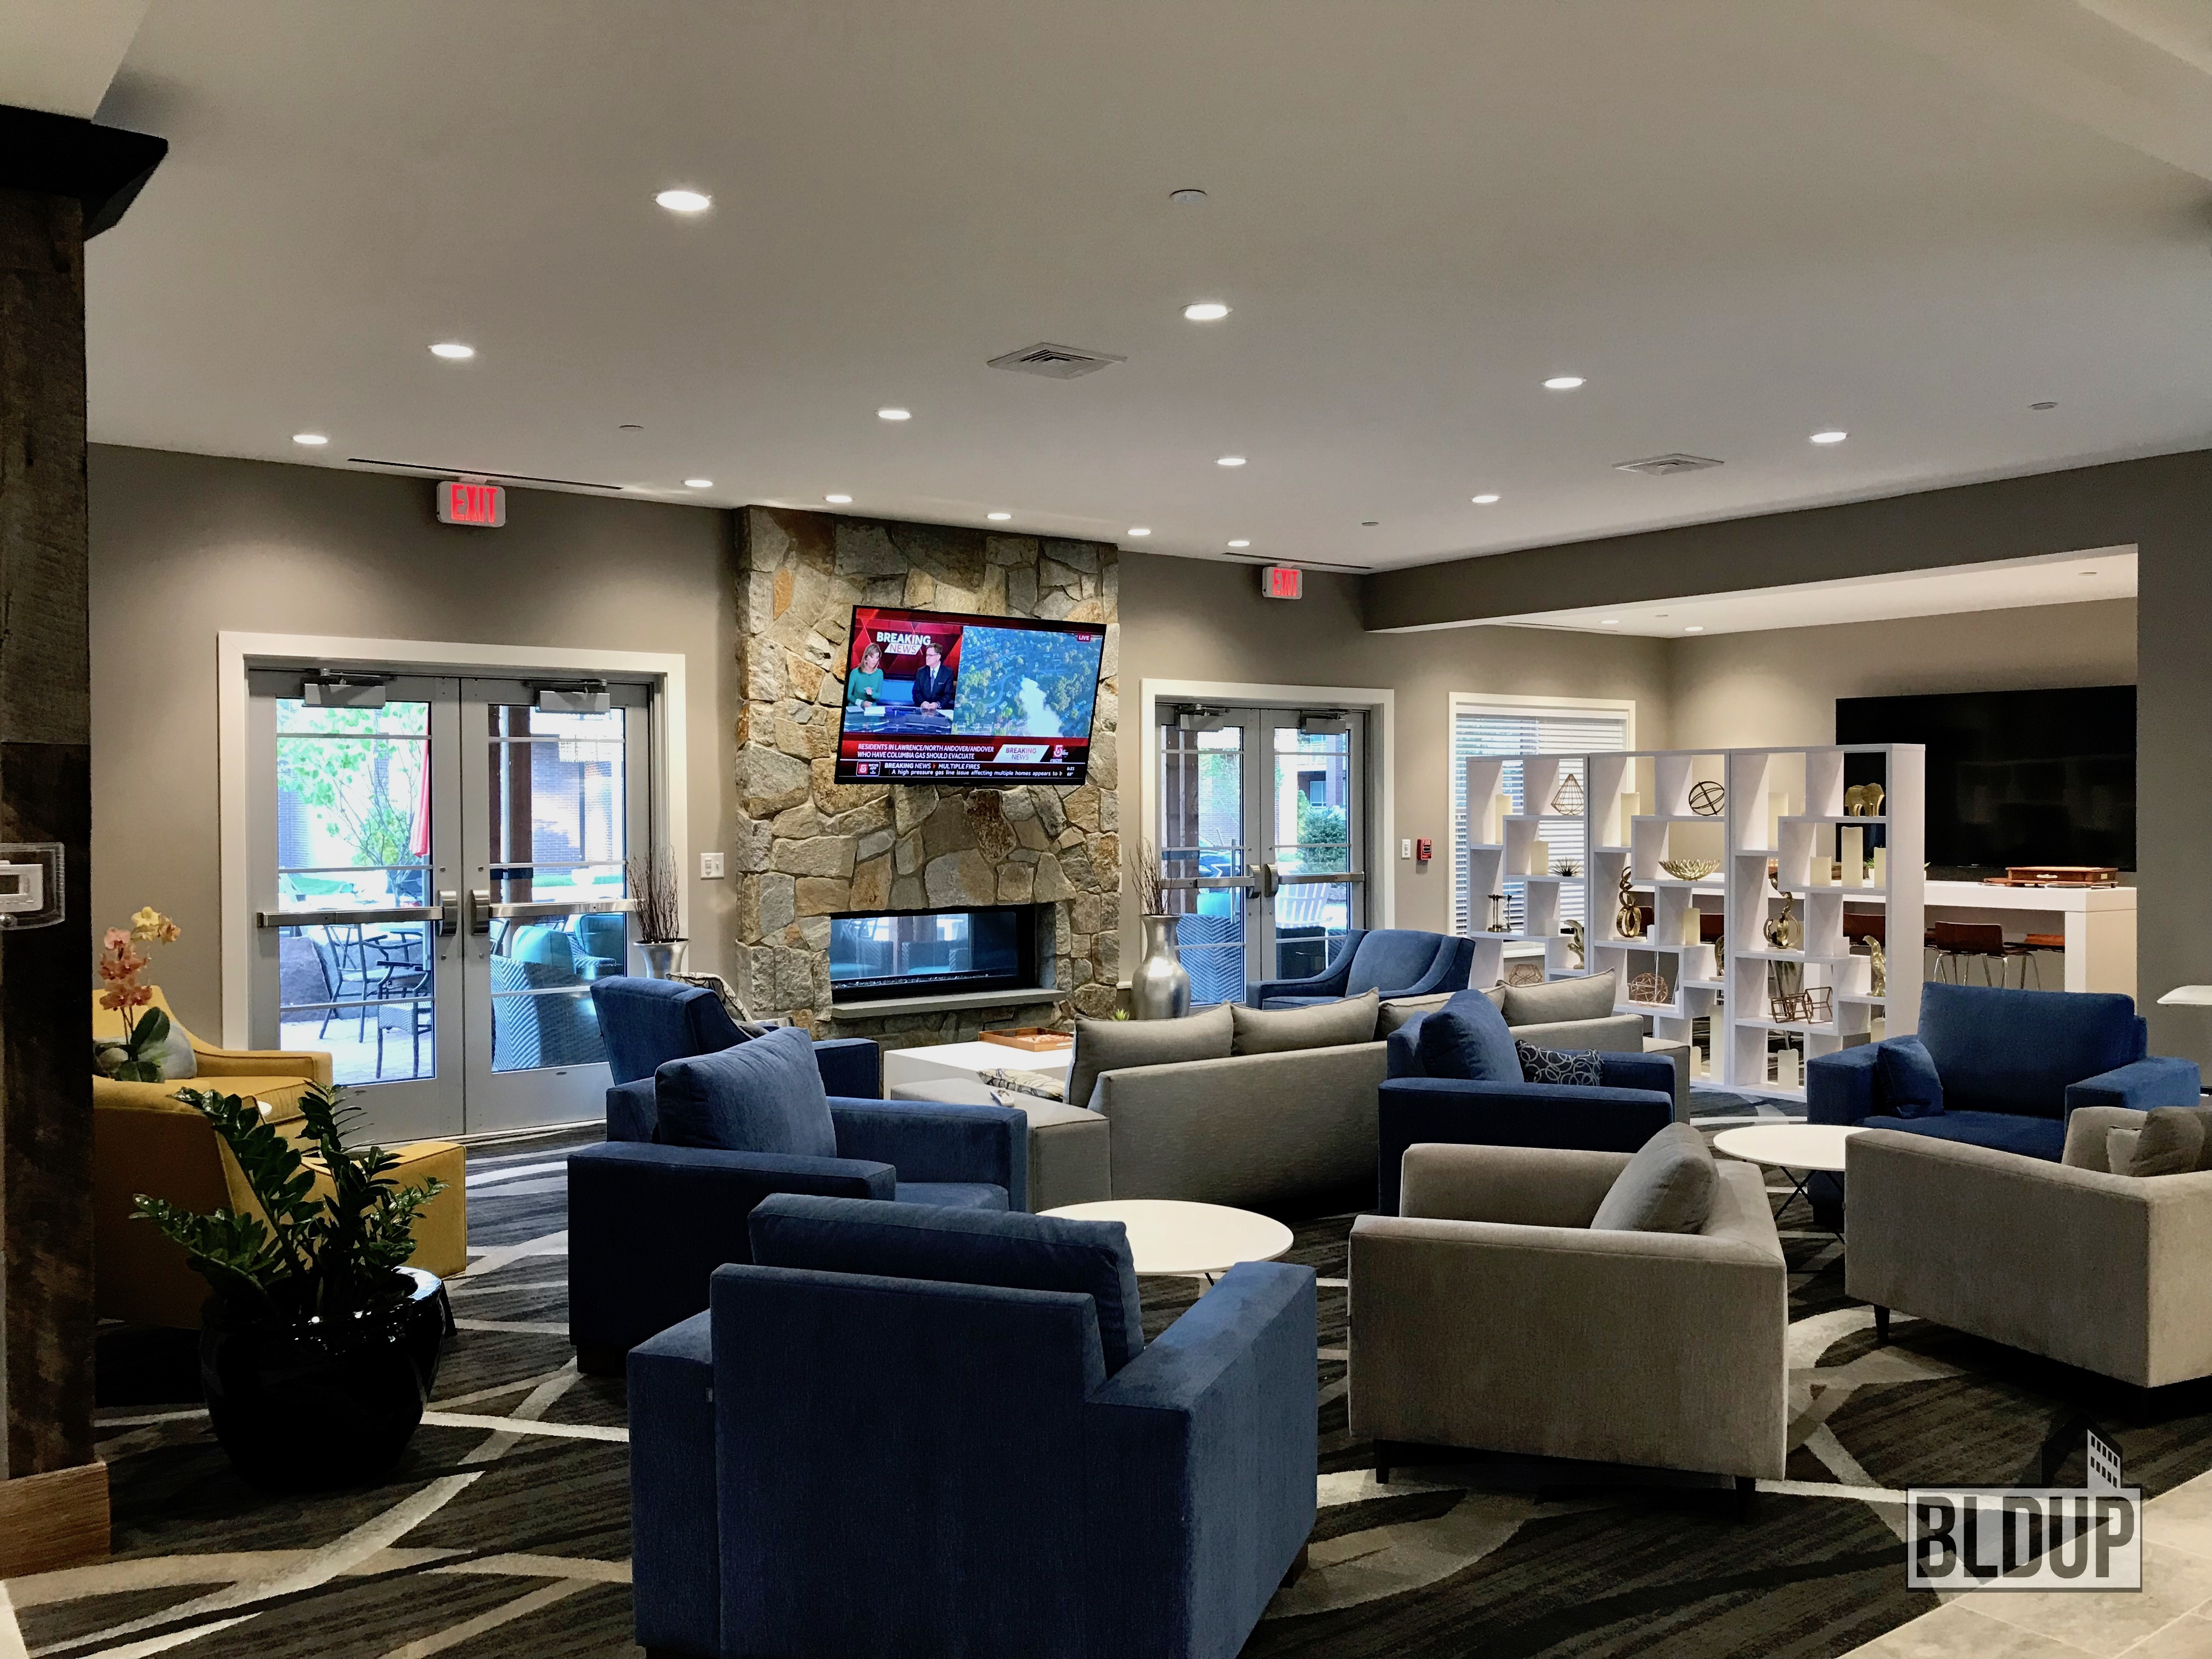 Elevation clubhouse interior